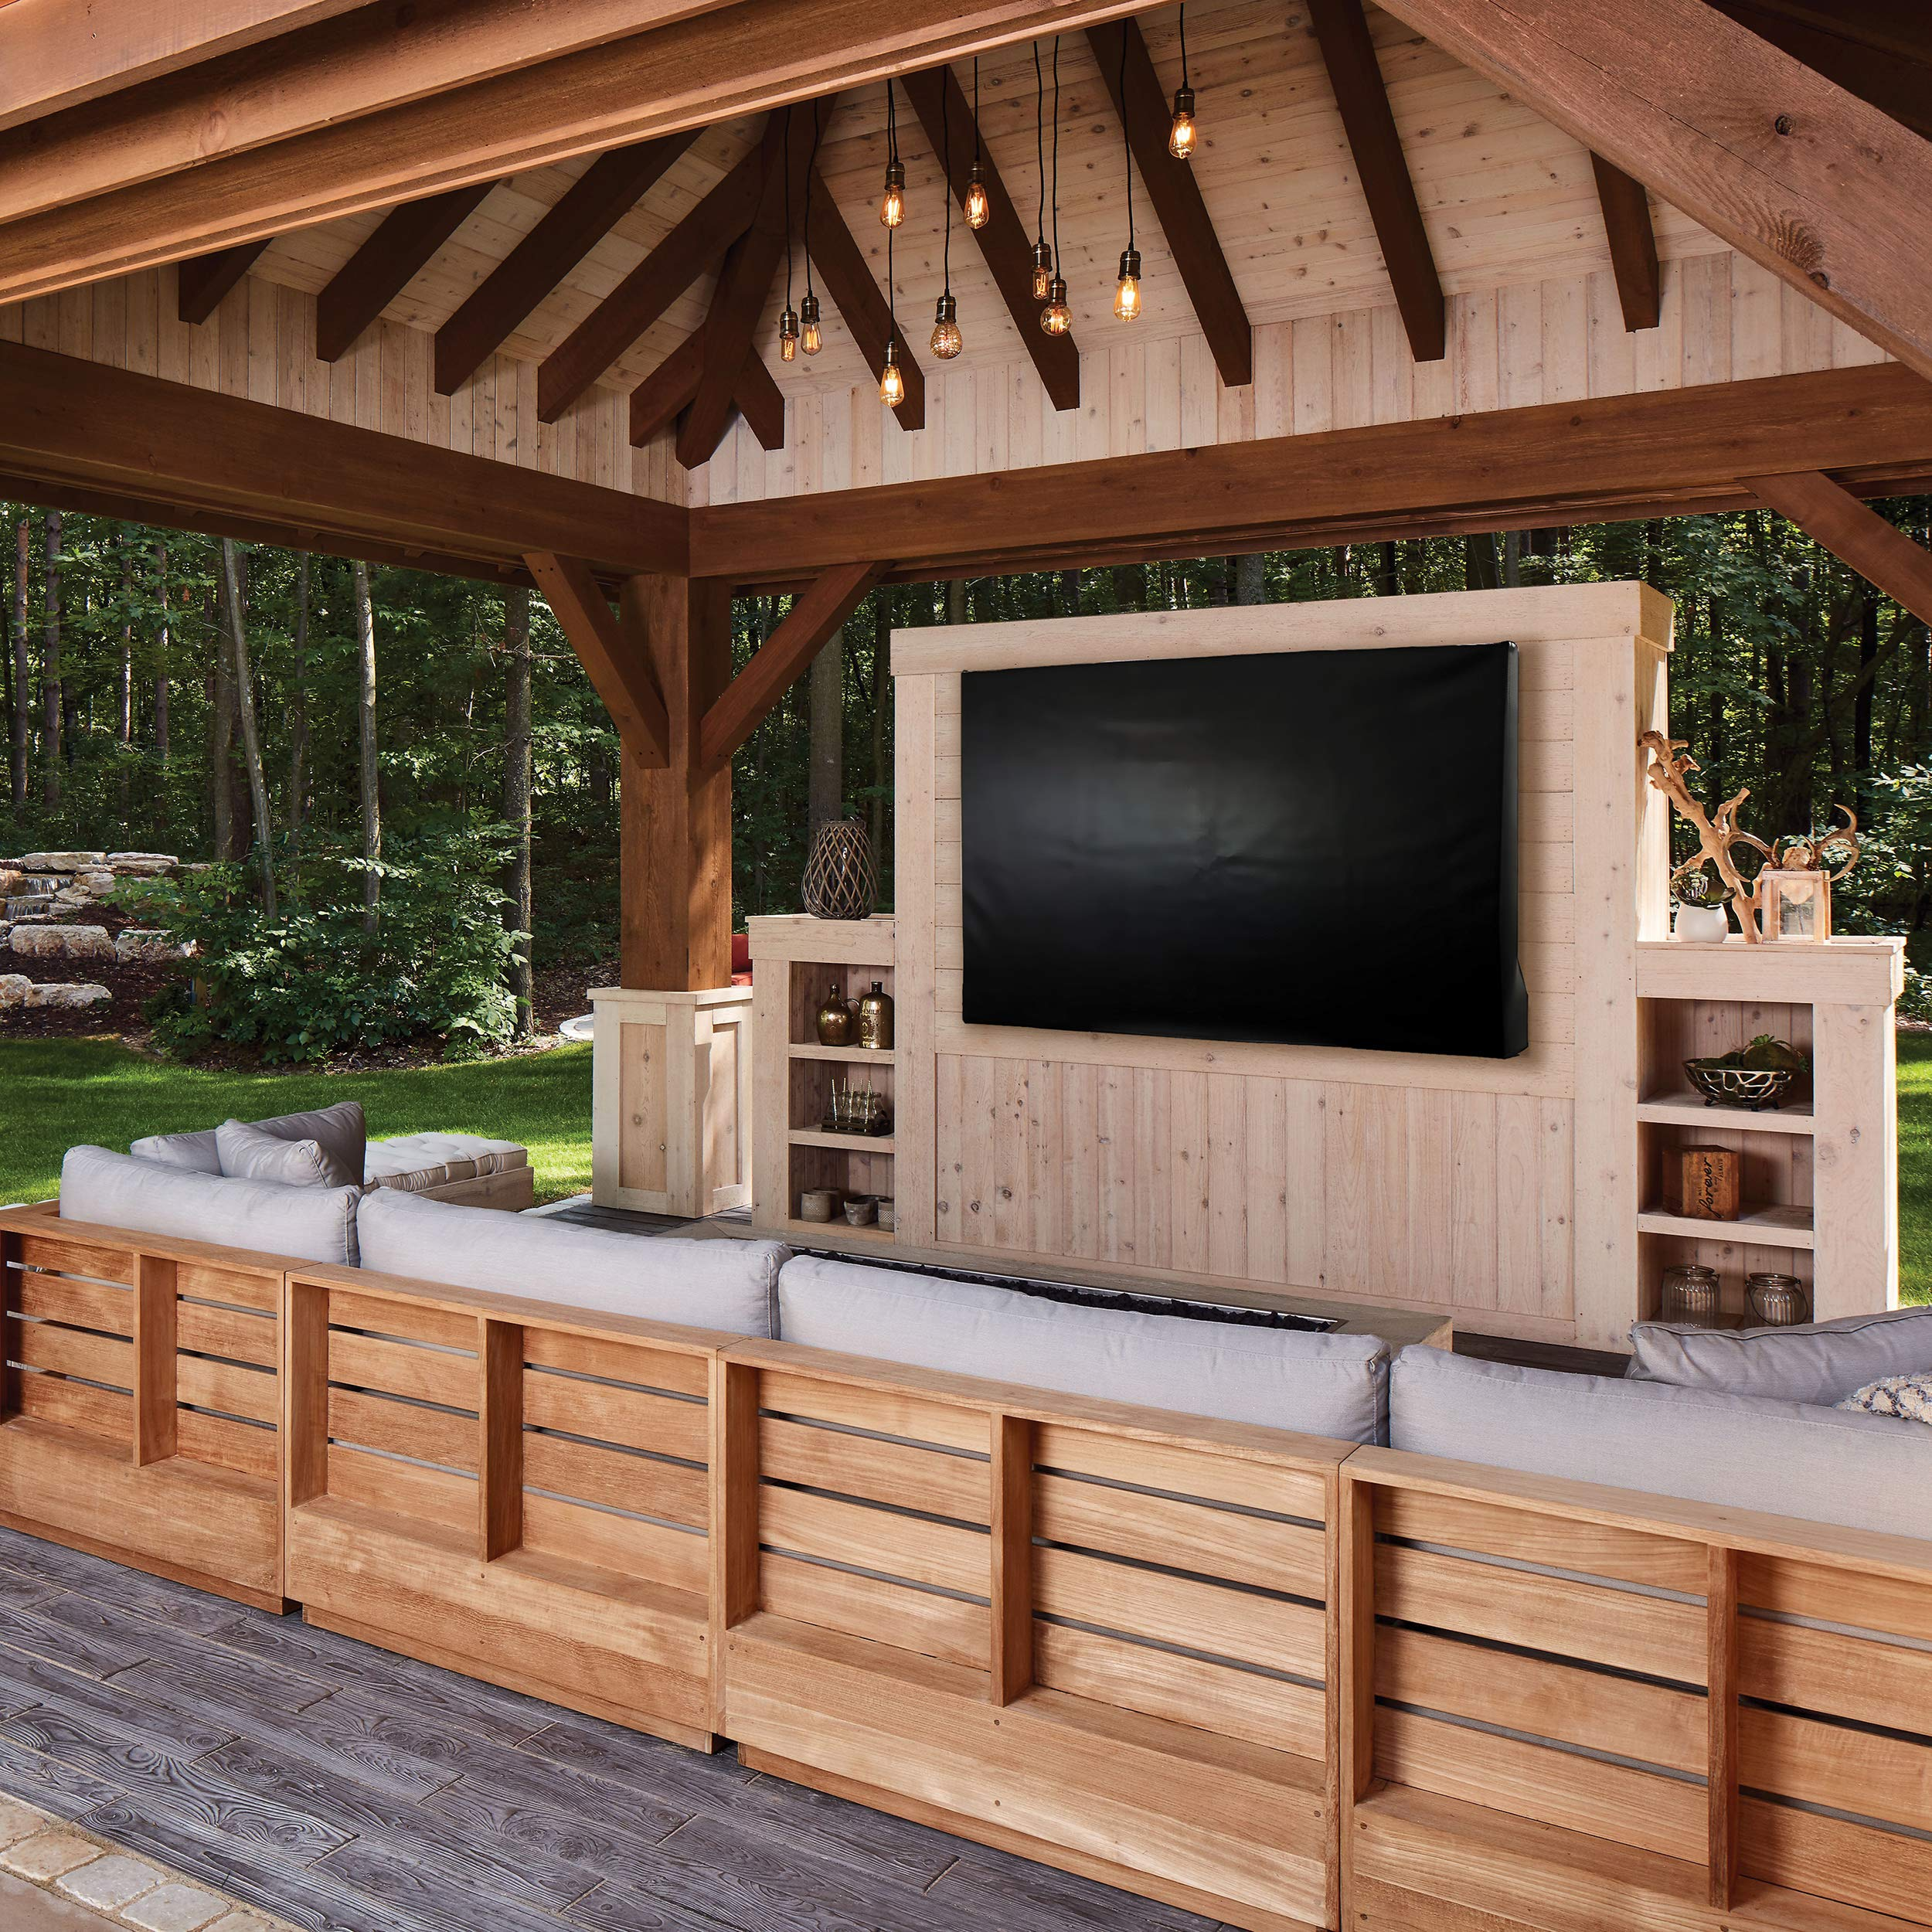 Séura Shade Series Outdoor TV Cover (for 55-inch Séura Shade Series TV with Soundbar) by Séura (Image #4)